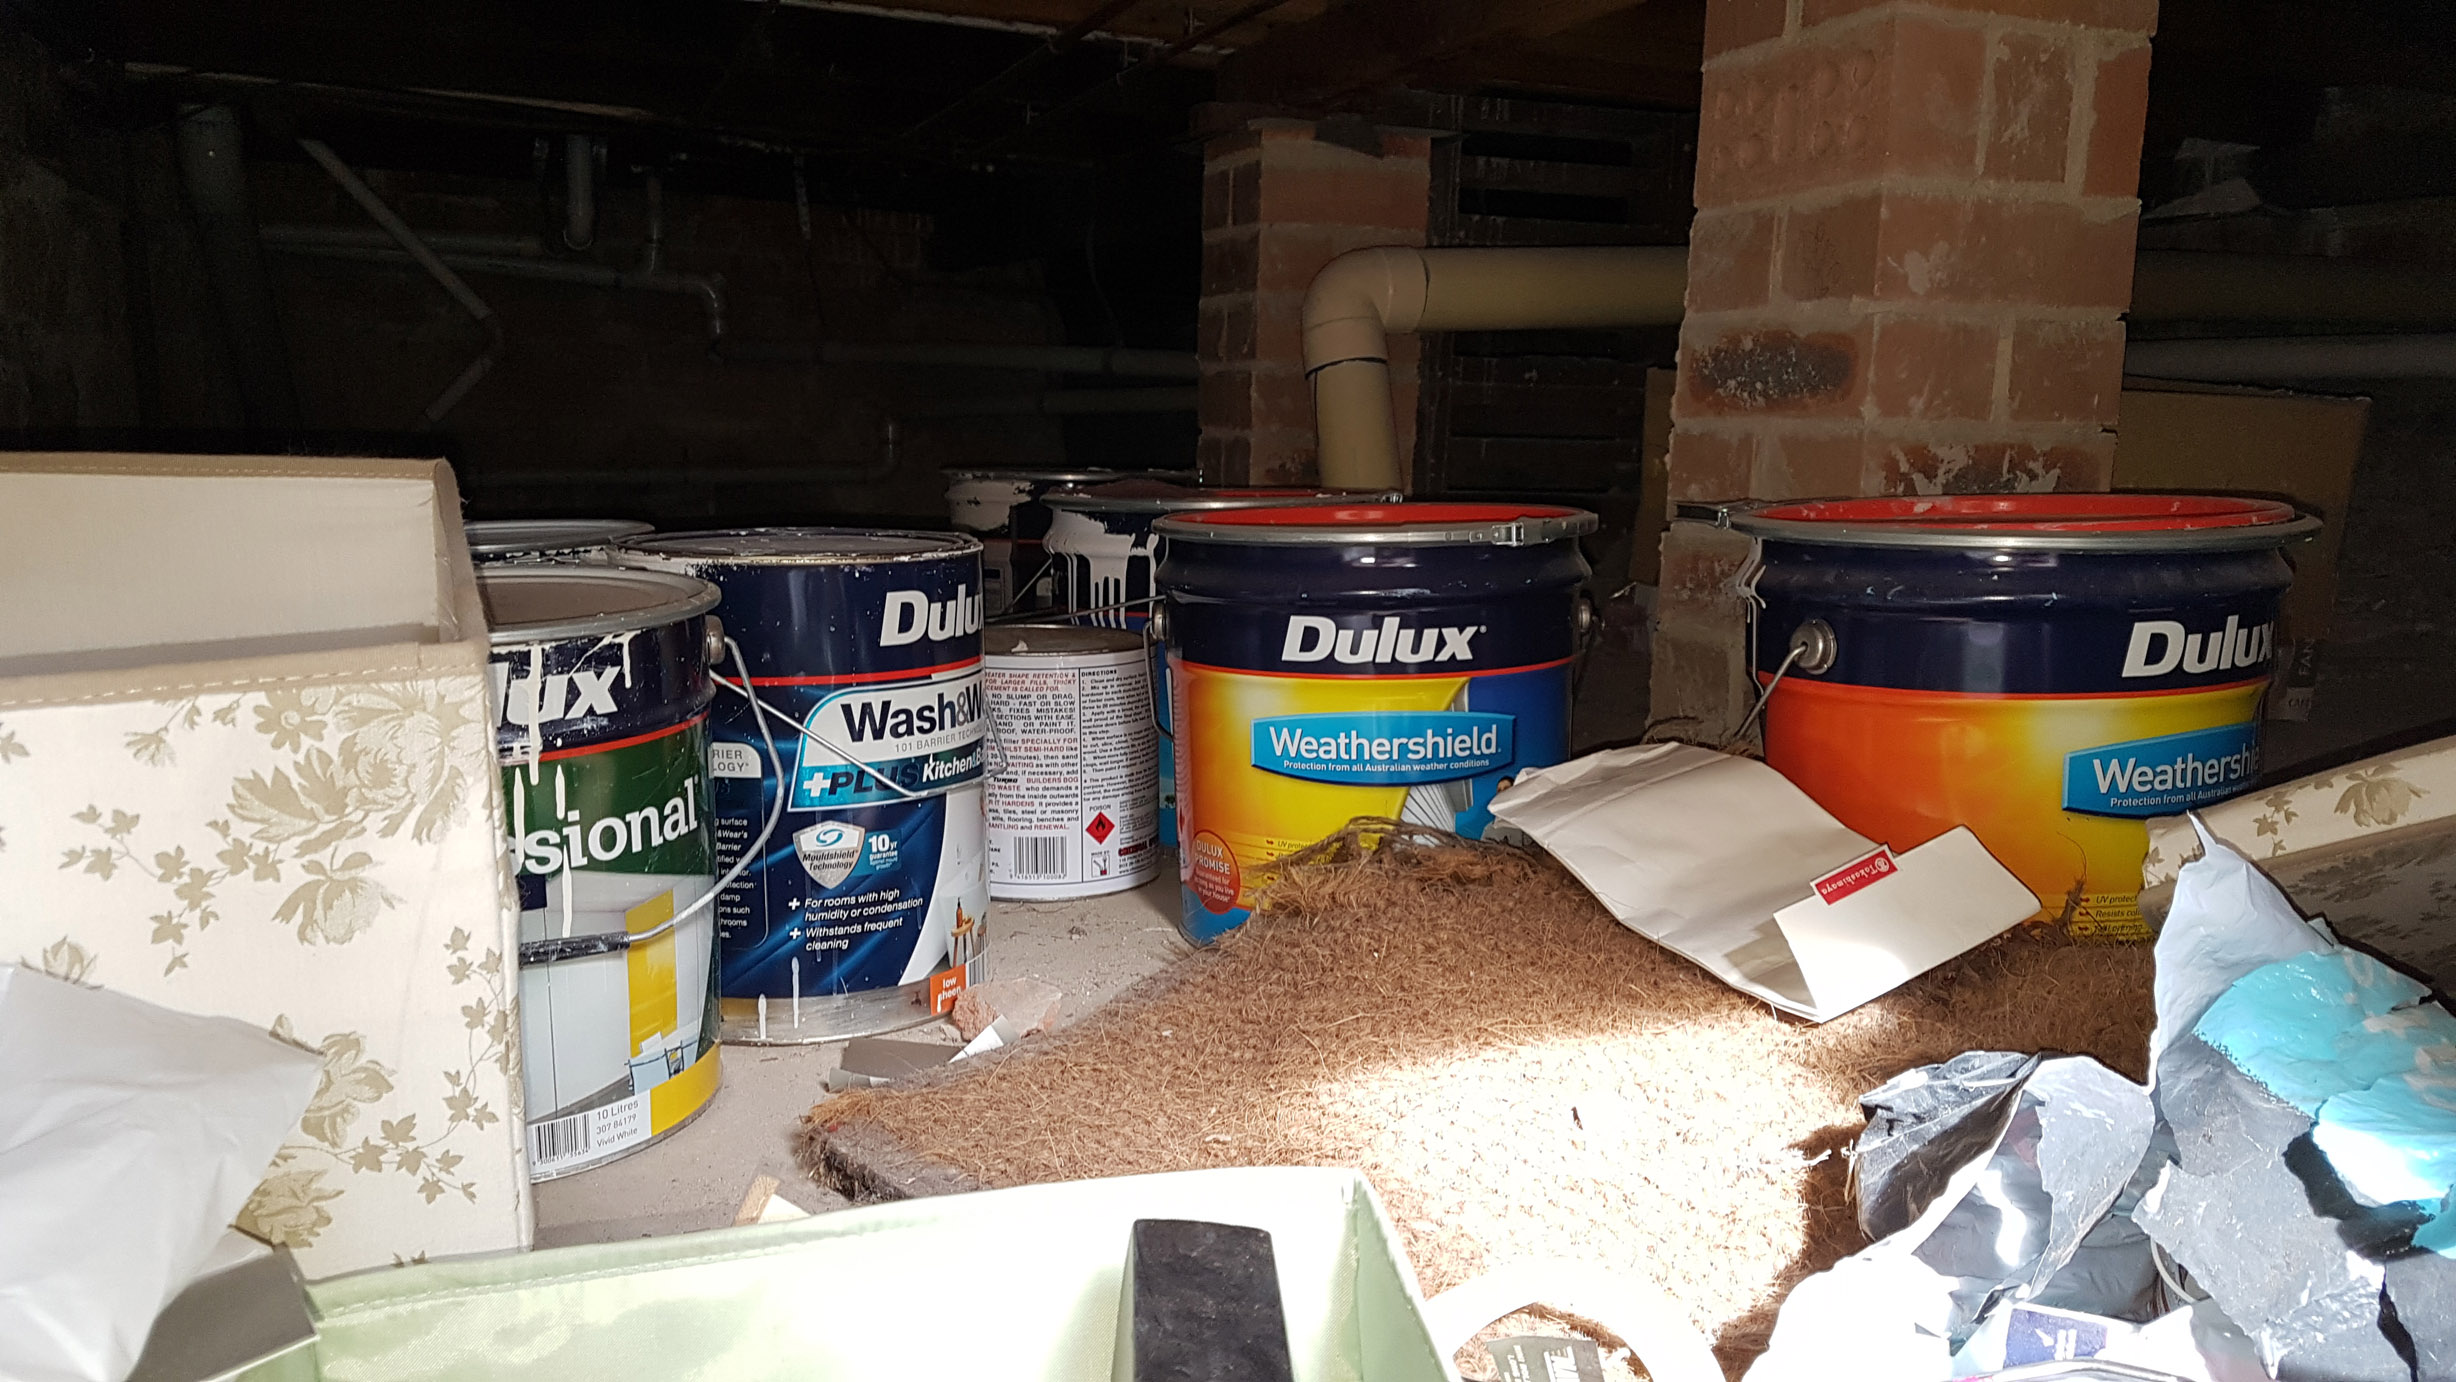 Paints are often found during the inspection process.